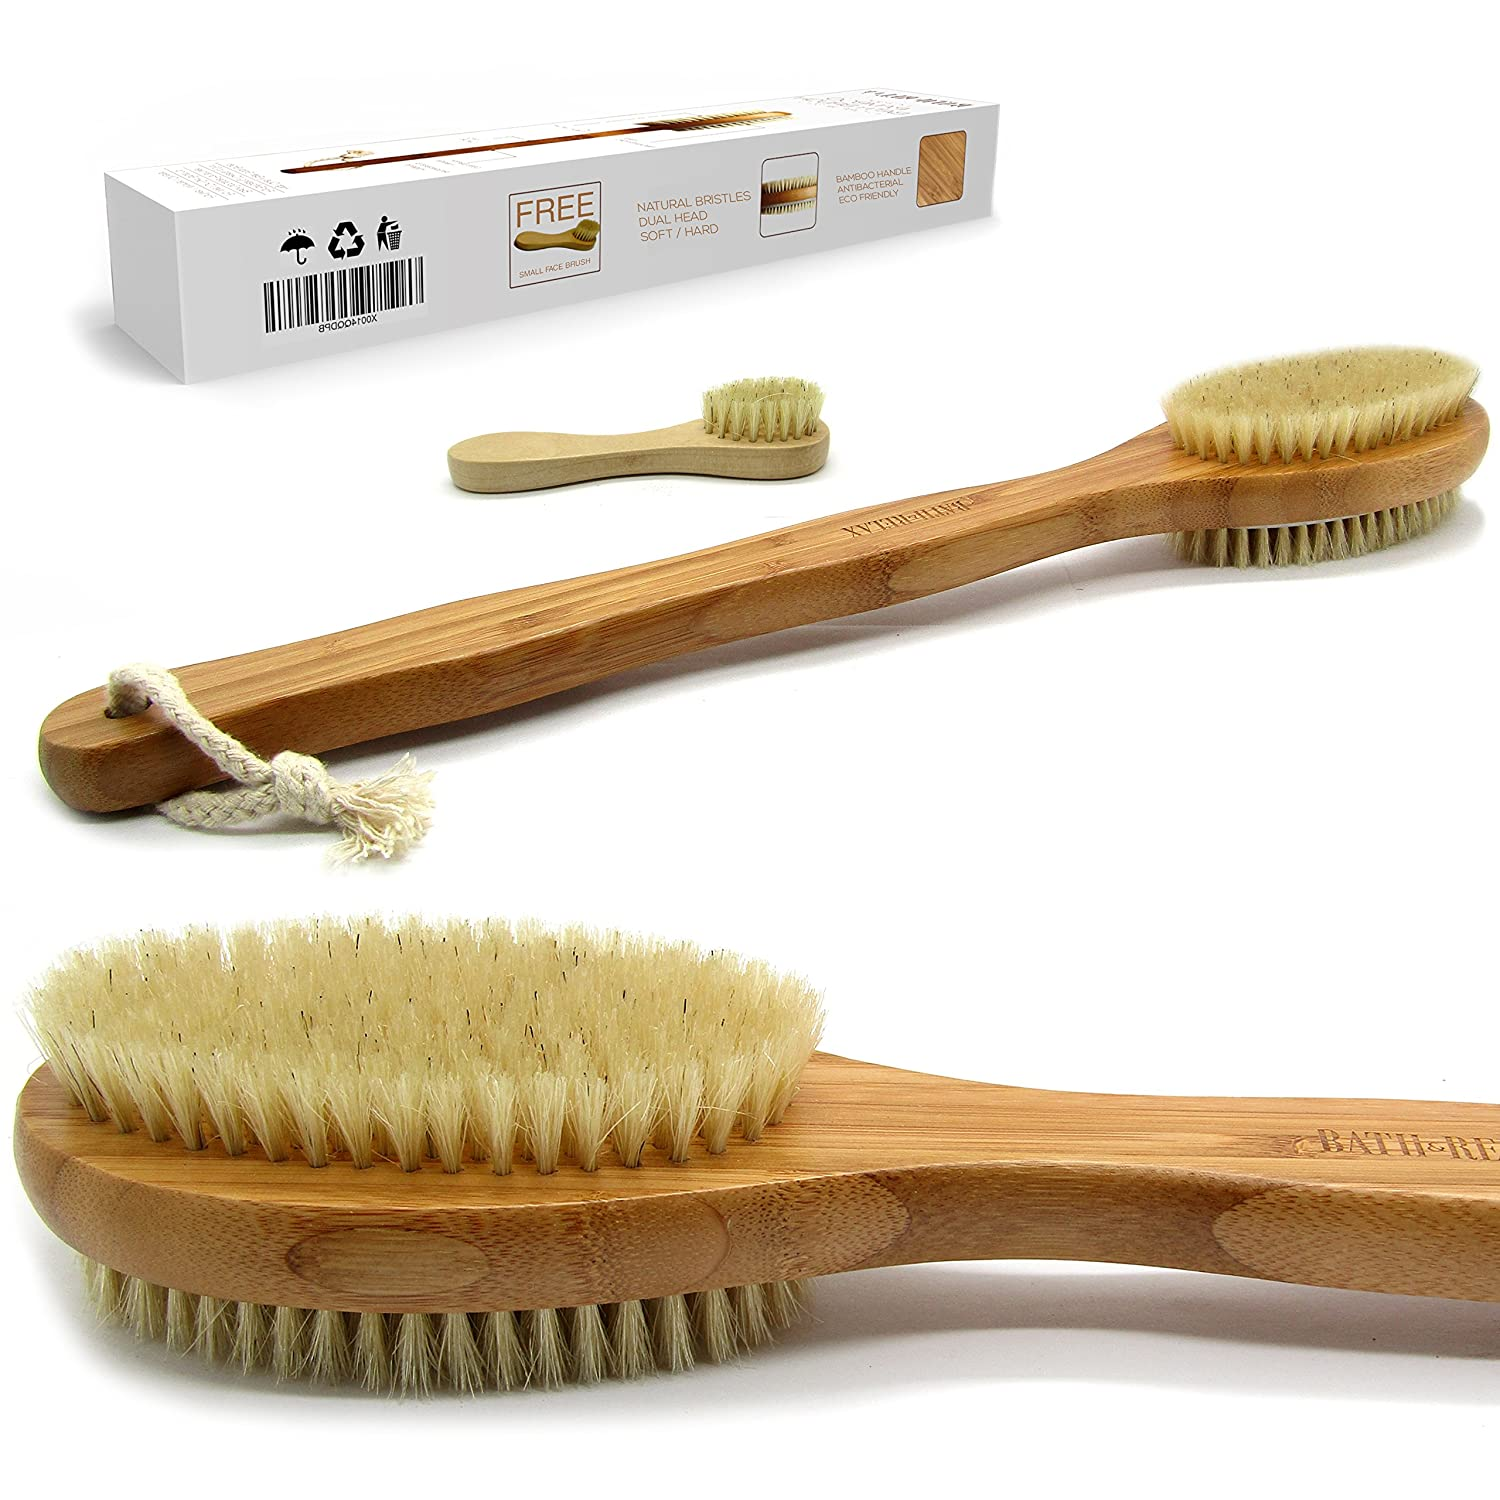 Bath & Relax Bamboo Bath Brush Long 17 Handle Back Body Scrubber For shower dry/Wet Skin brushing Suitable for men/women